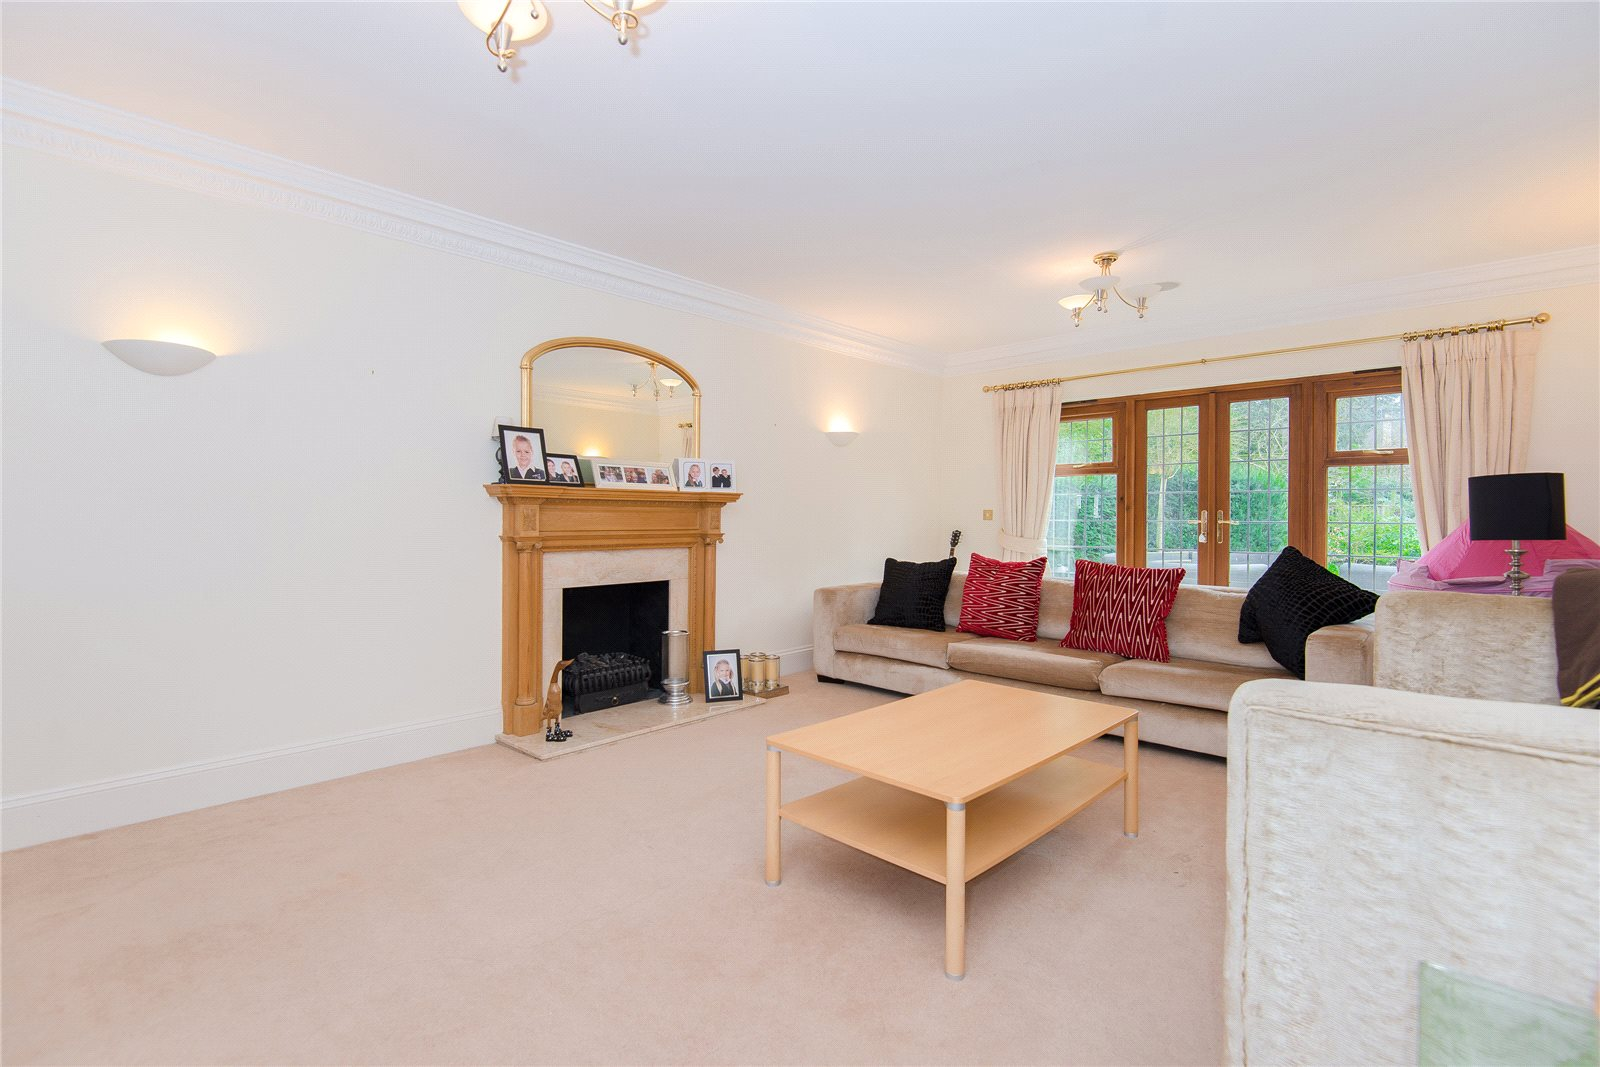 Additional photo for property listing at Deadhearn Lane, Chalfont St Giles, Buckinghamshire, HP8 Chalfont St Giles, Αγγλια